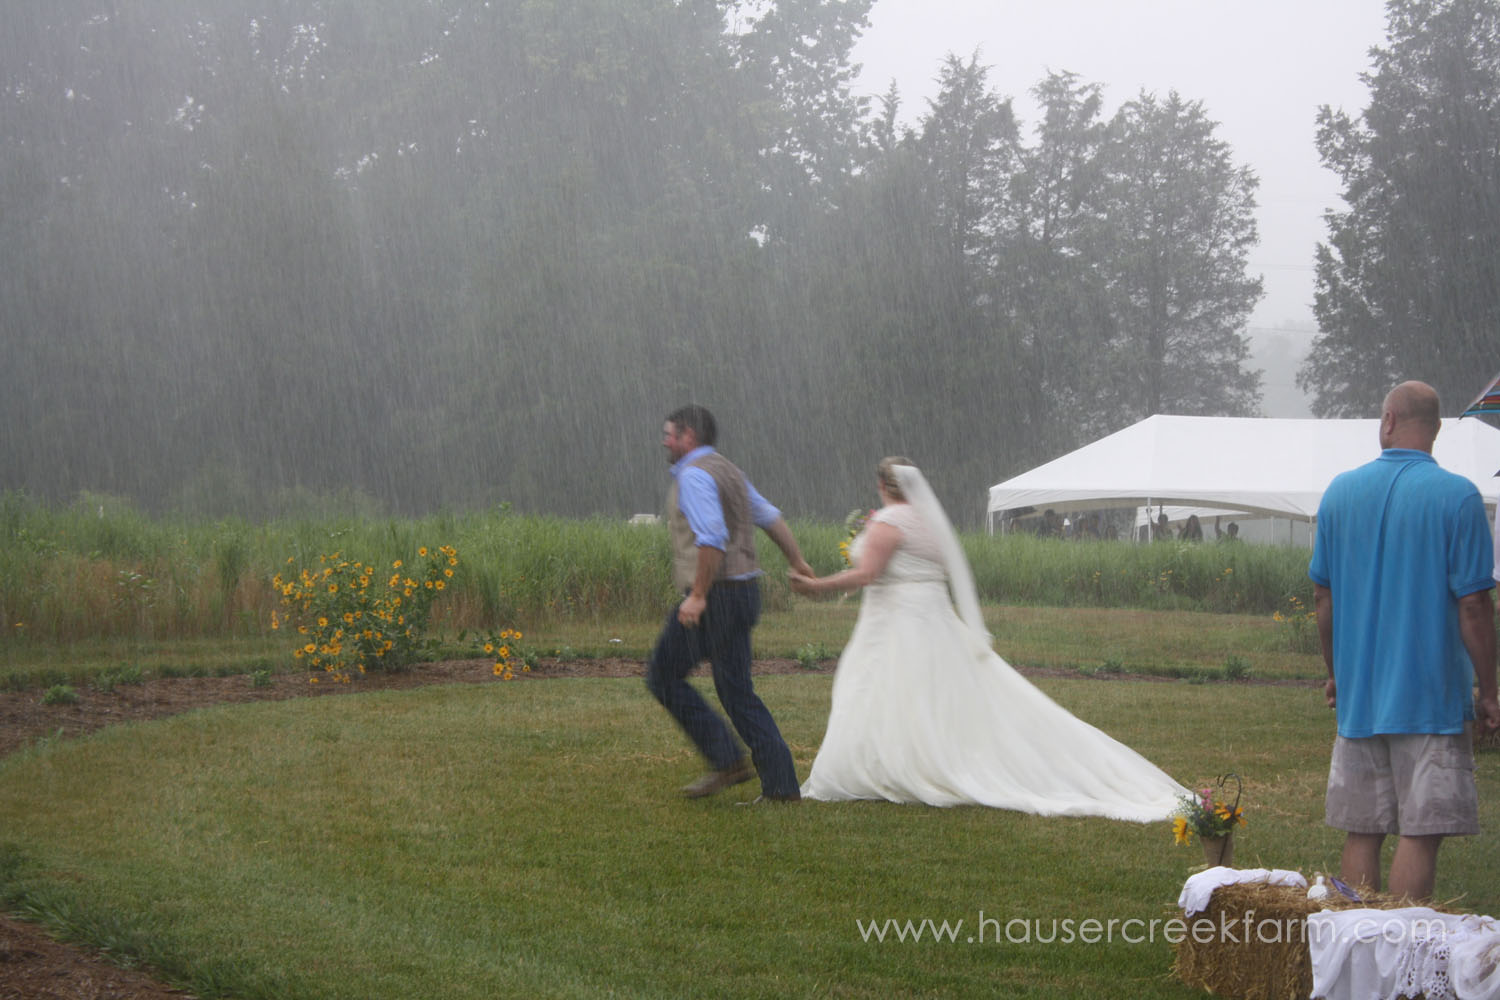 bride-and-groom-wedding-at-hauser-creek-farm-nc-4498.jpg